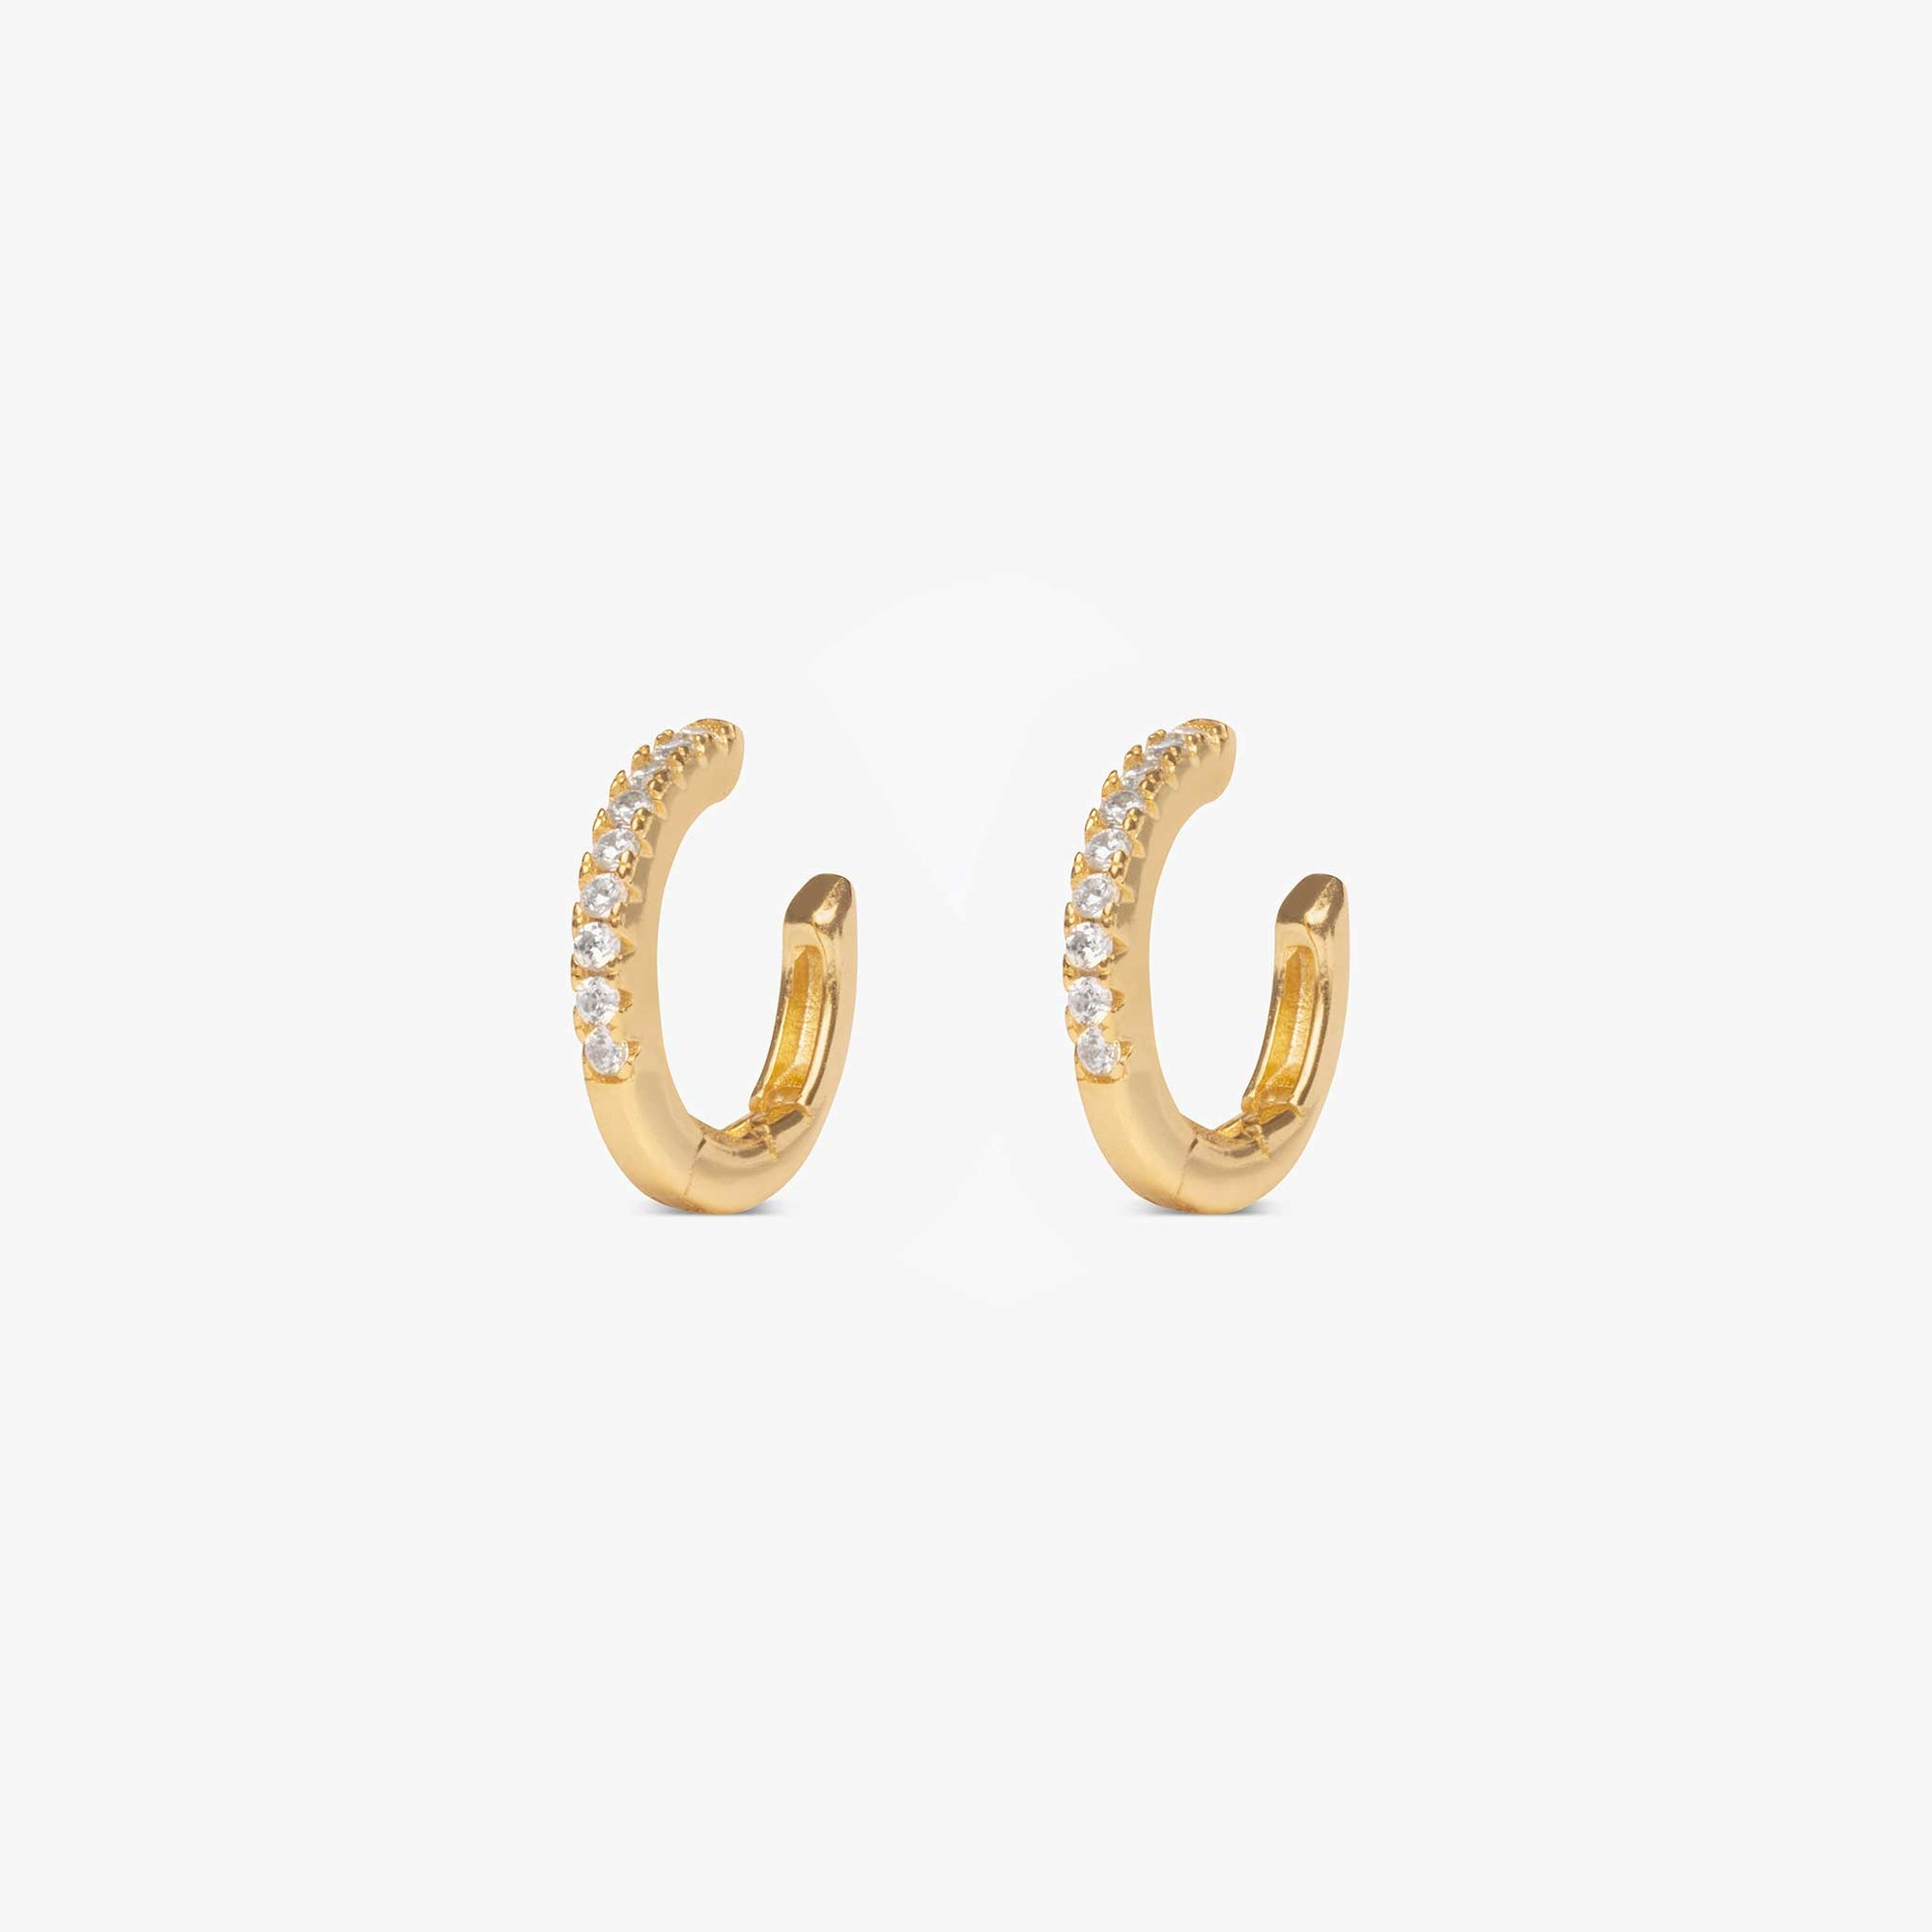 Pavé cuff that can be used as a conch faux-piercing with CZ gems lining the front. color:gold / clear